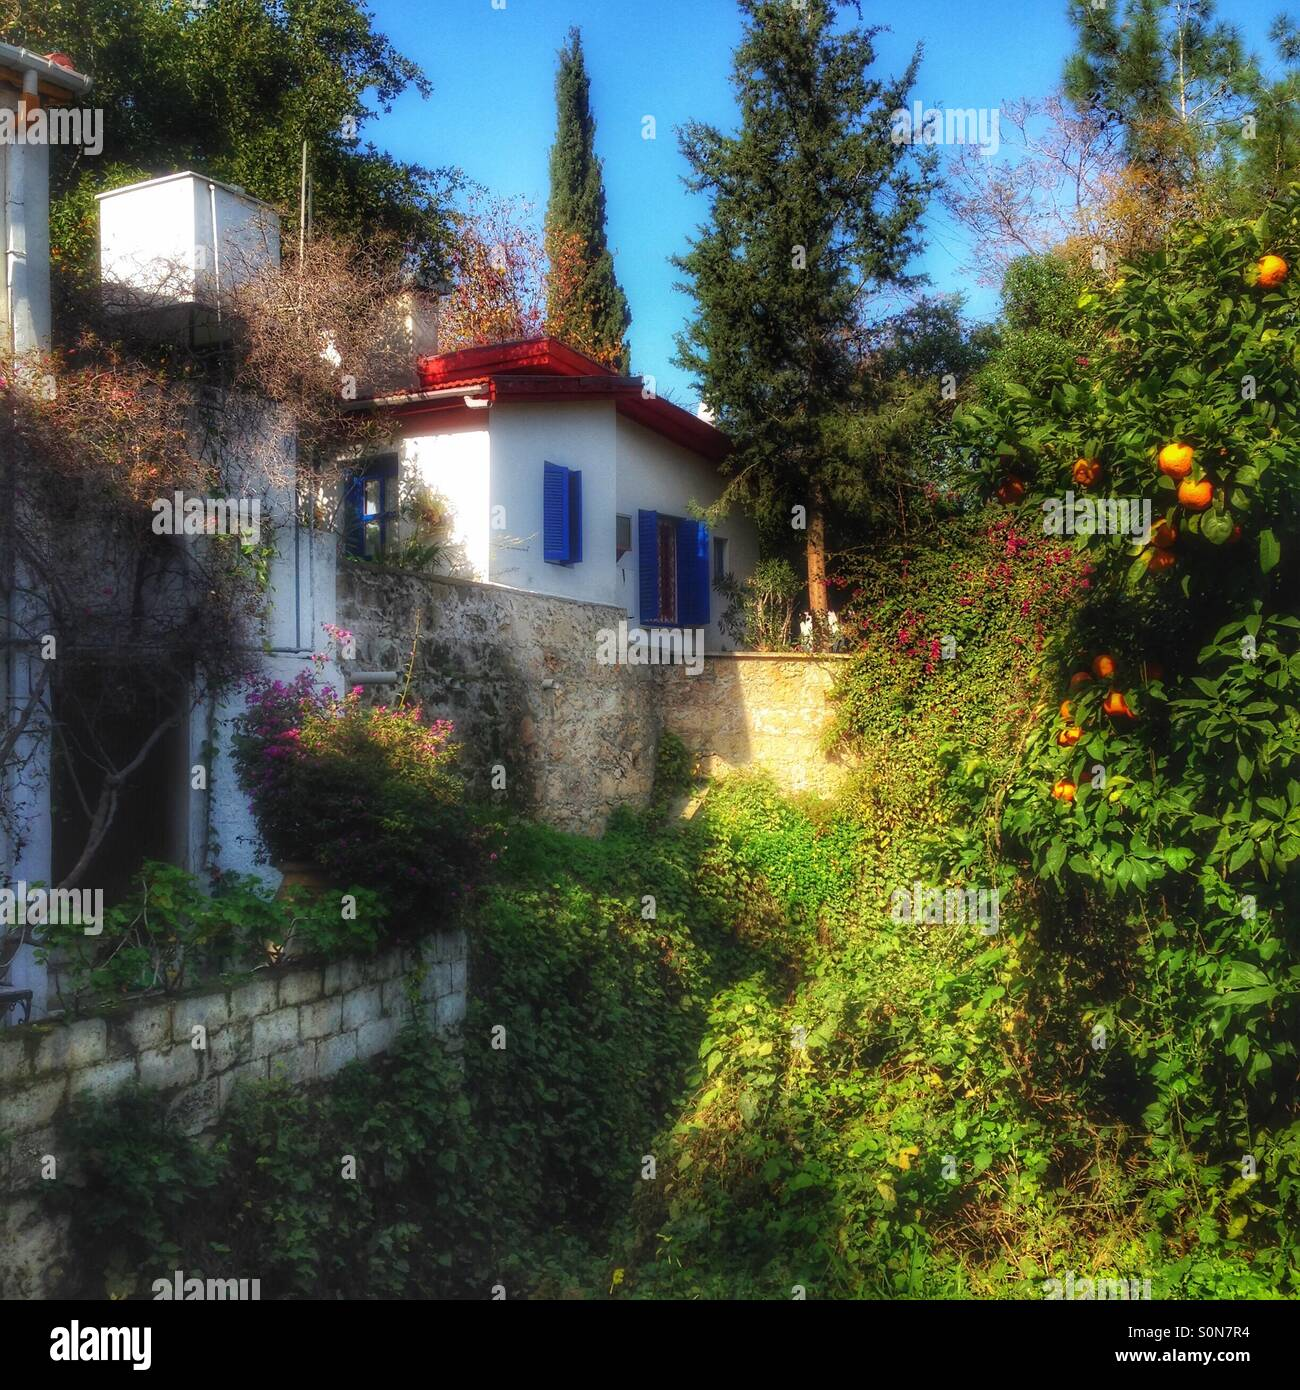 Gardens, orange trees and houses of north cyprus Stock Photo